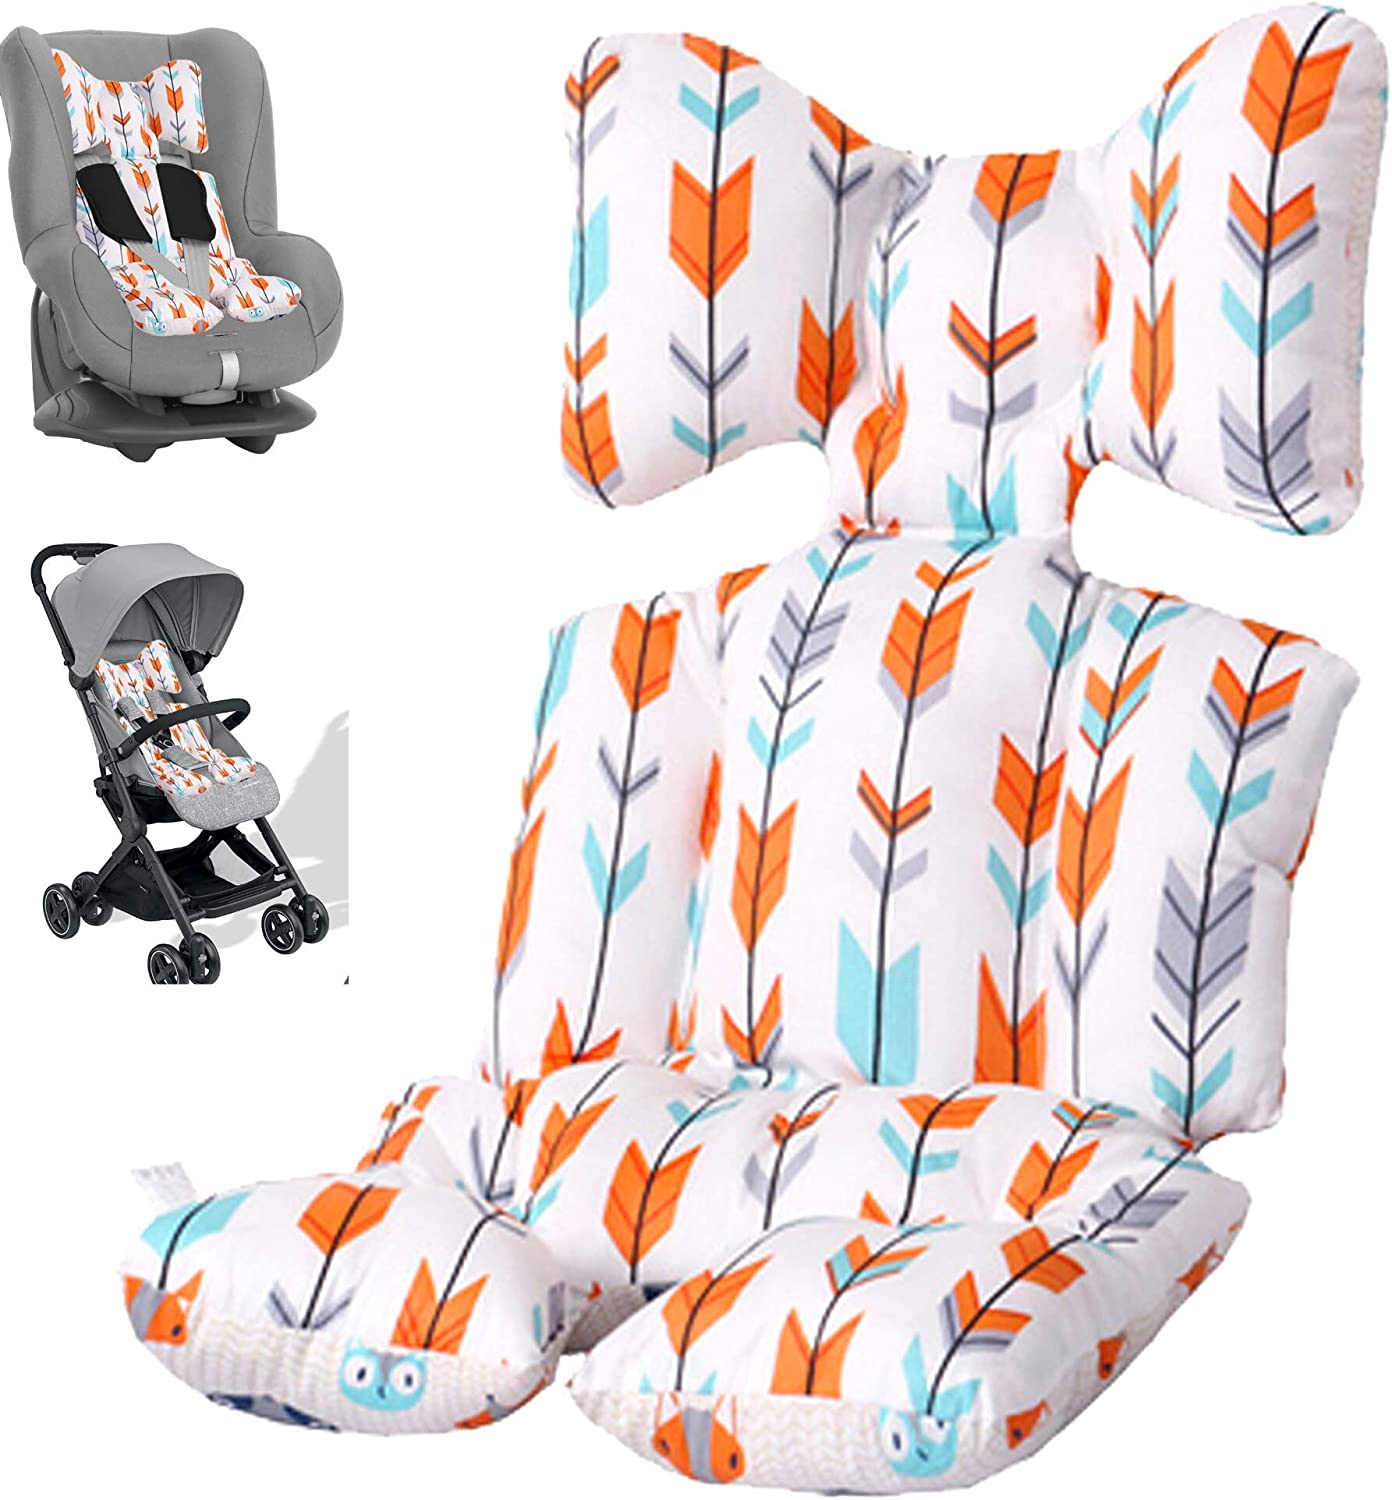 New Generation, Baby Seat Liner, Reversible Pure Cotton Universal Baby Stroller Seat Cushion Pad for Pushchair, Double Face, Pram, Stroller, Buggy and